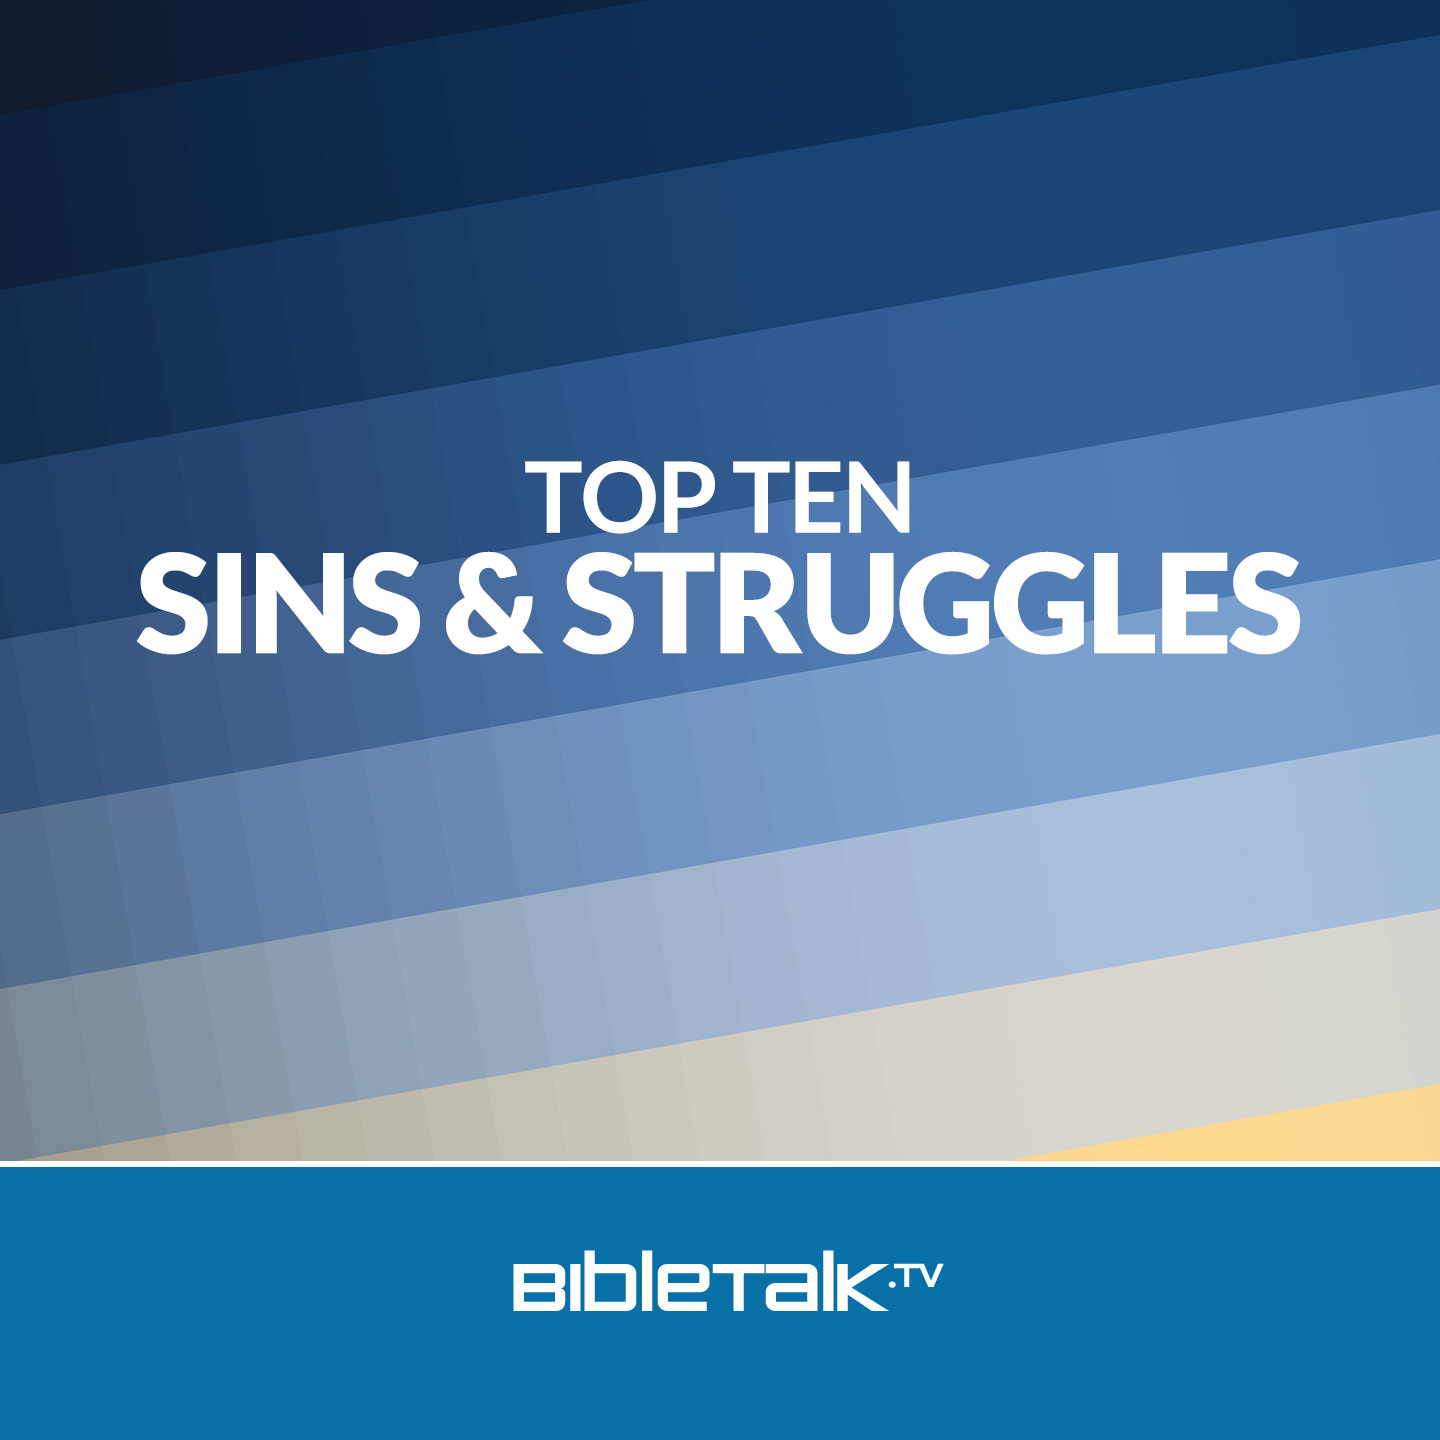 Top Ten Sins and Struggles